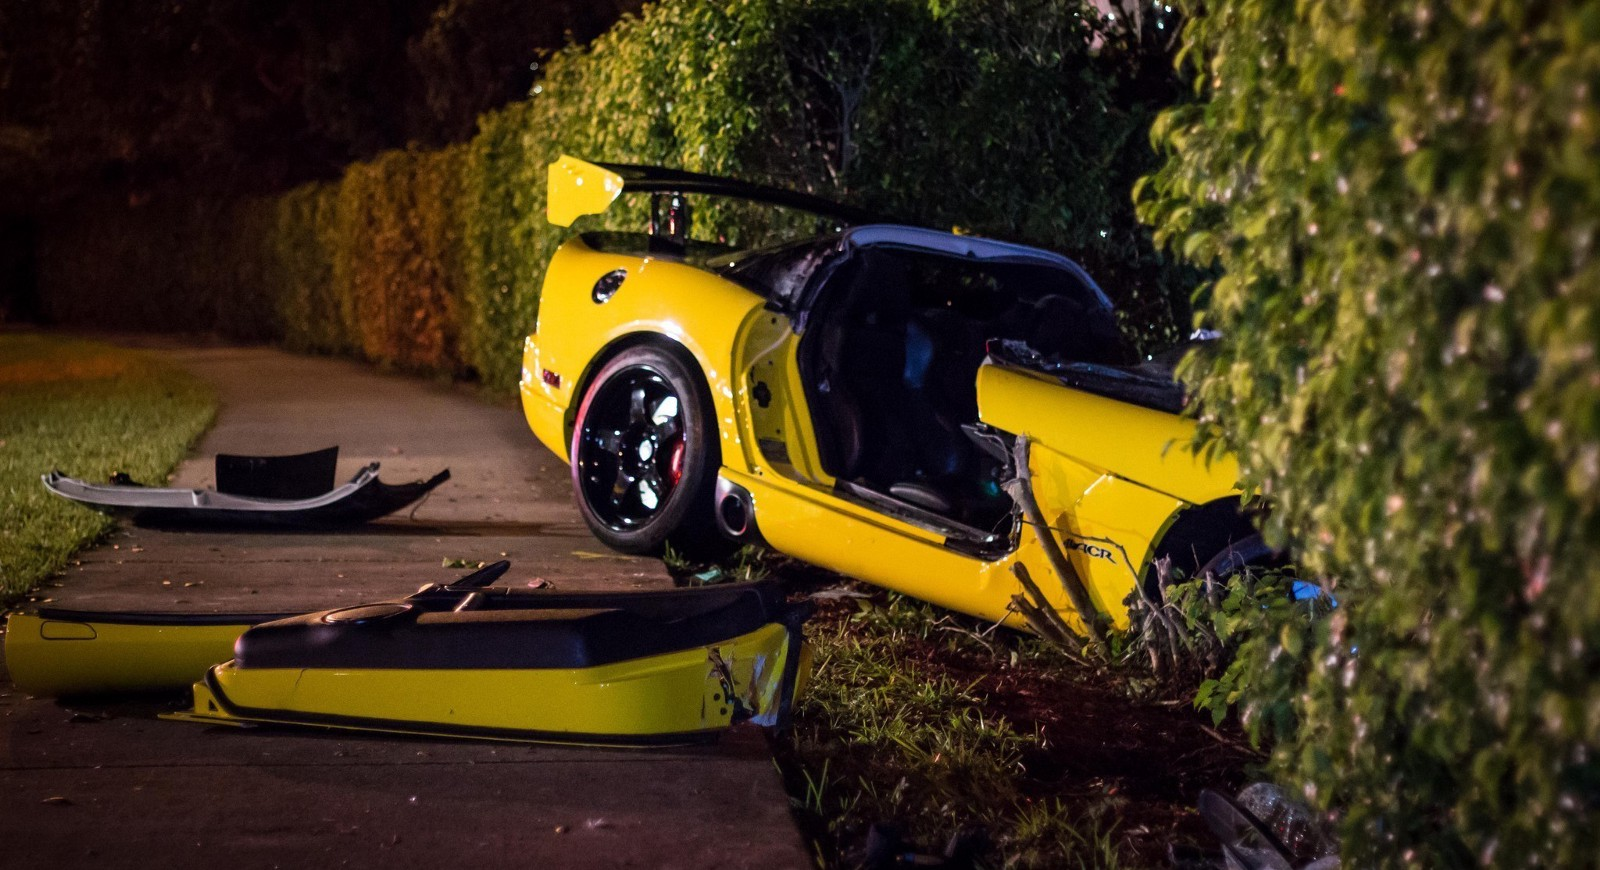 Lab Results Reveal Driver Killed In Sports Car Accident Had Normal